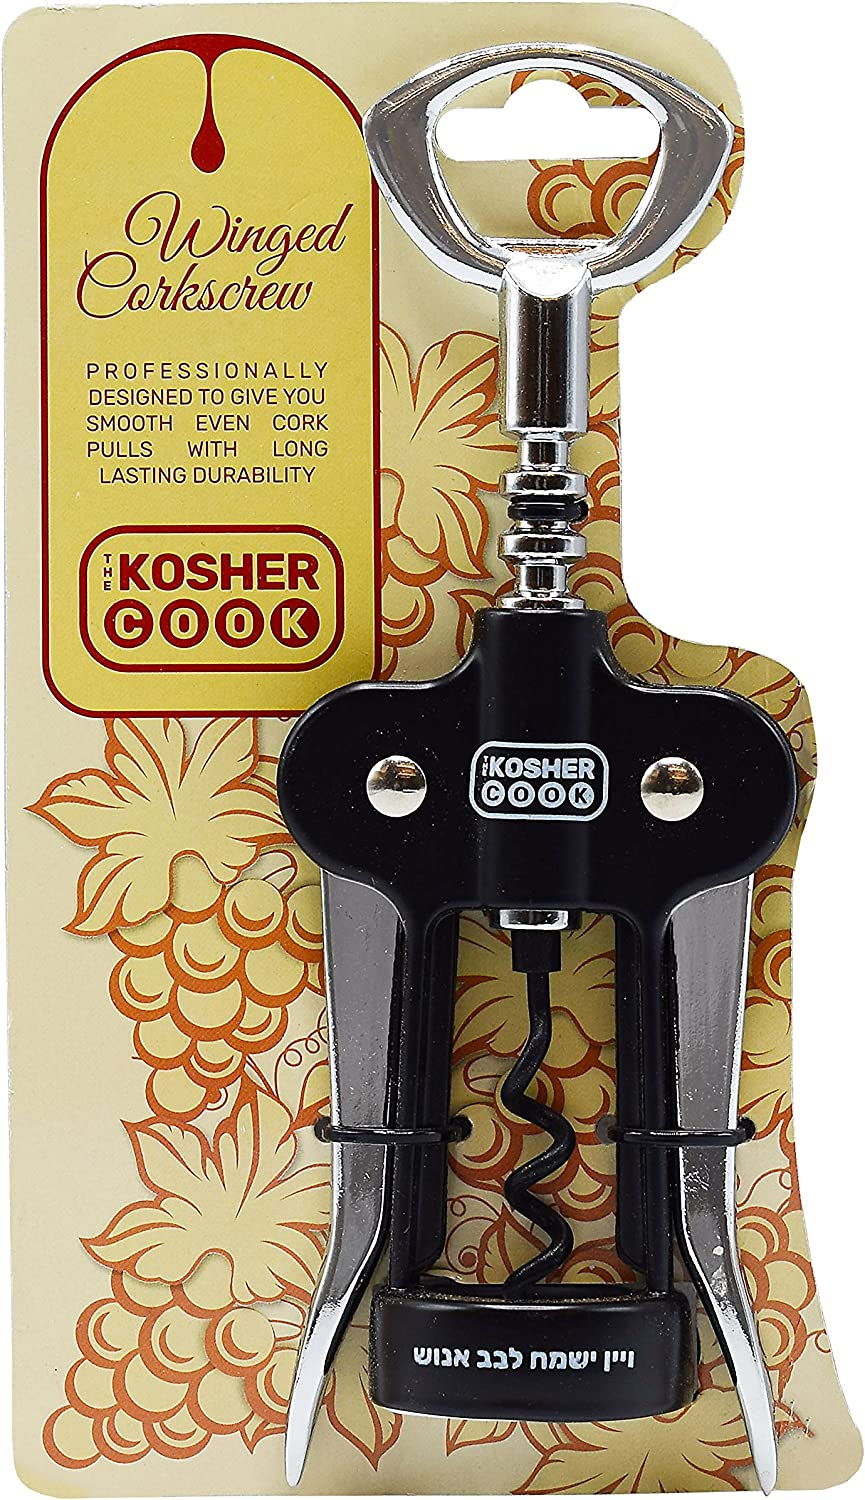 Heavy Duty Wing Corkscrew - Professional Winged Design for Easy Wine Bottle Cork Removal - by The Kosher Cook